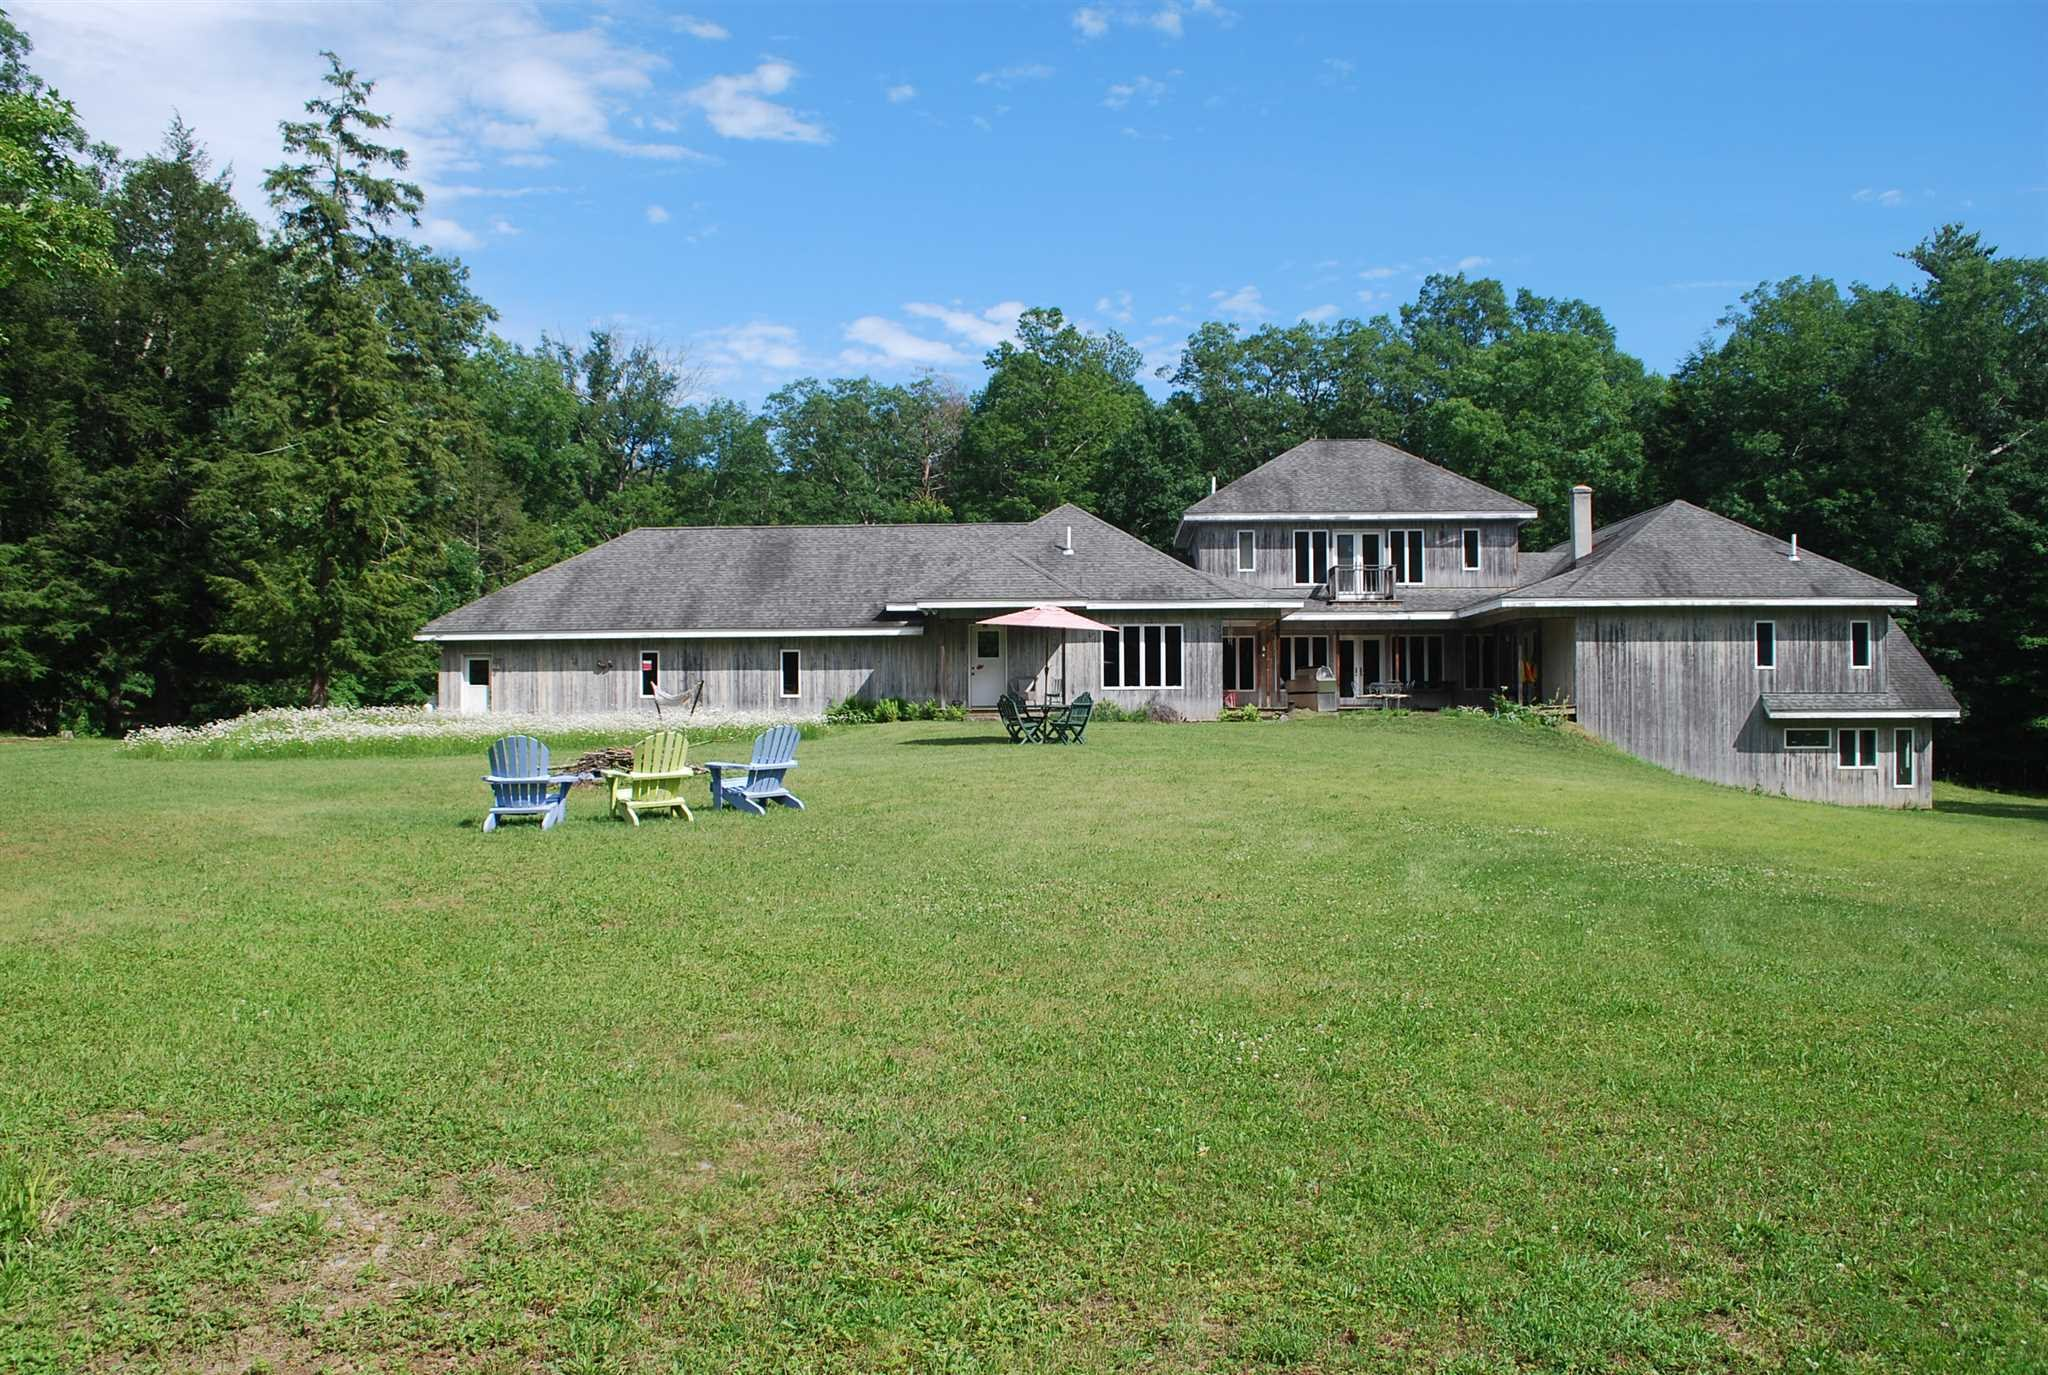 Additional photo for property listing at 261 ZIPFELDBURG Road 261 ZIPFELDBURG Road Rhinebeck, New York 12572 United States